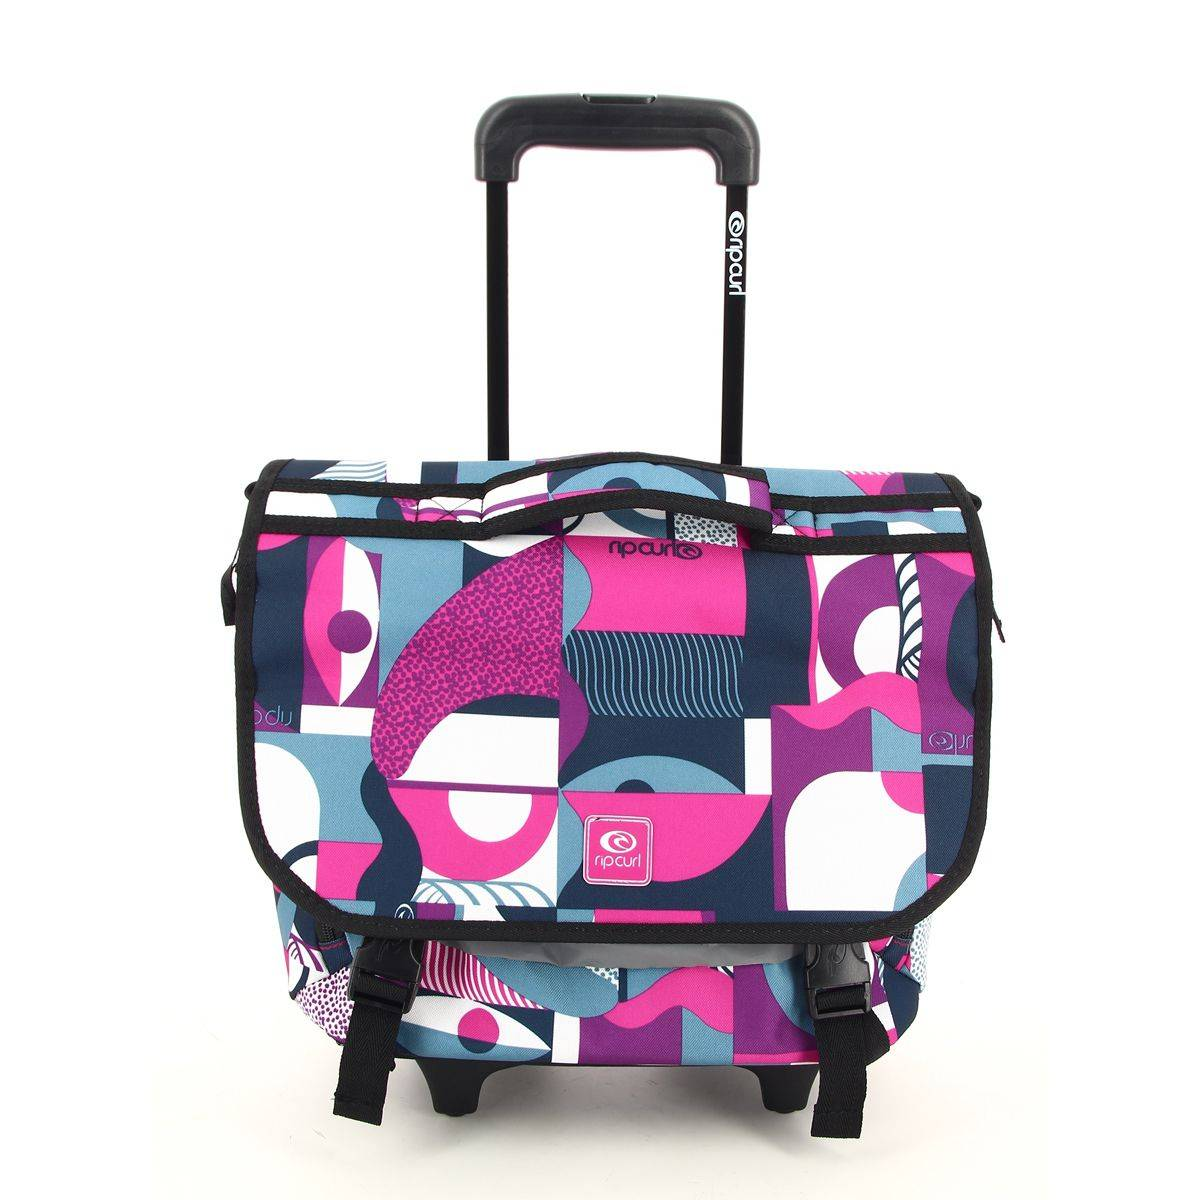 rip curl cartable roulettes fille paola wh satchel lbpgp4. Black Bedroom Furniture Sets. Home Design Ideas